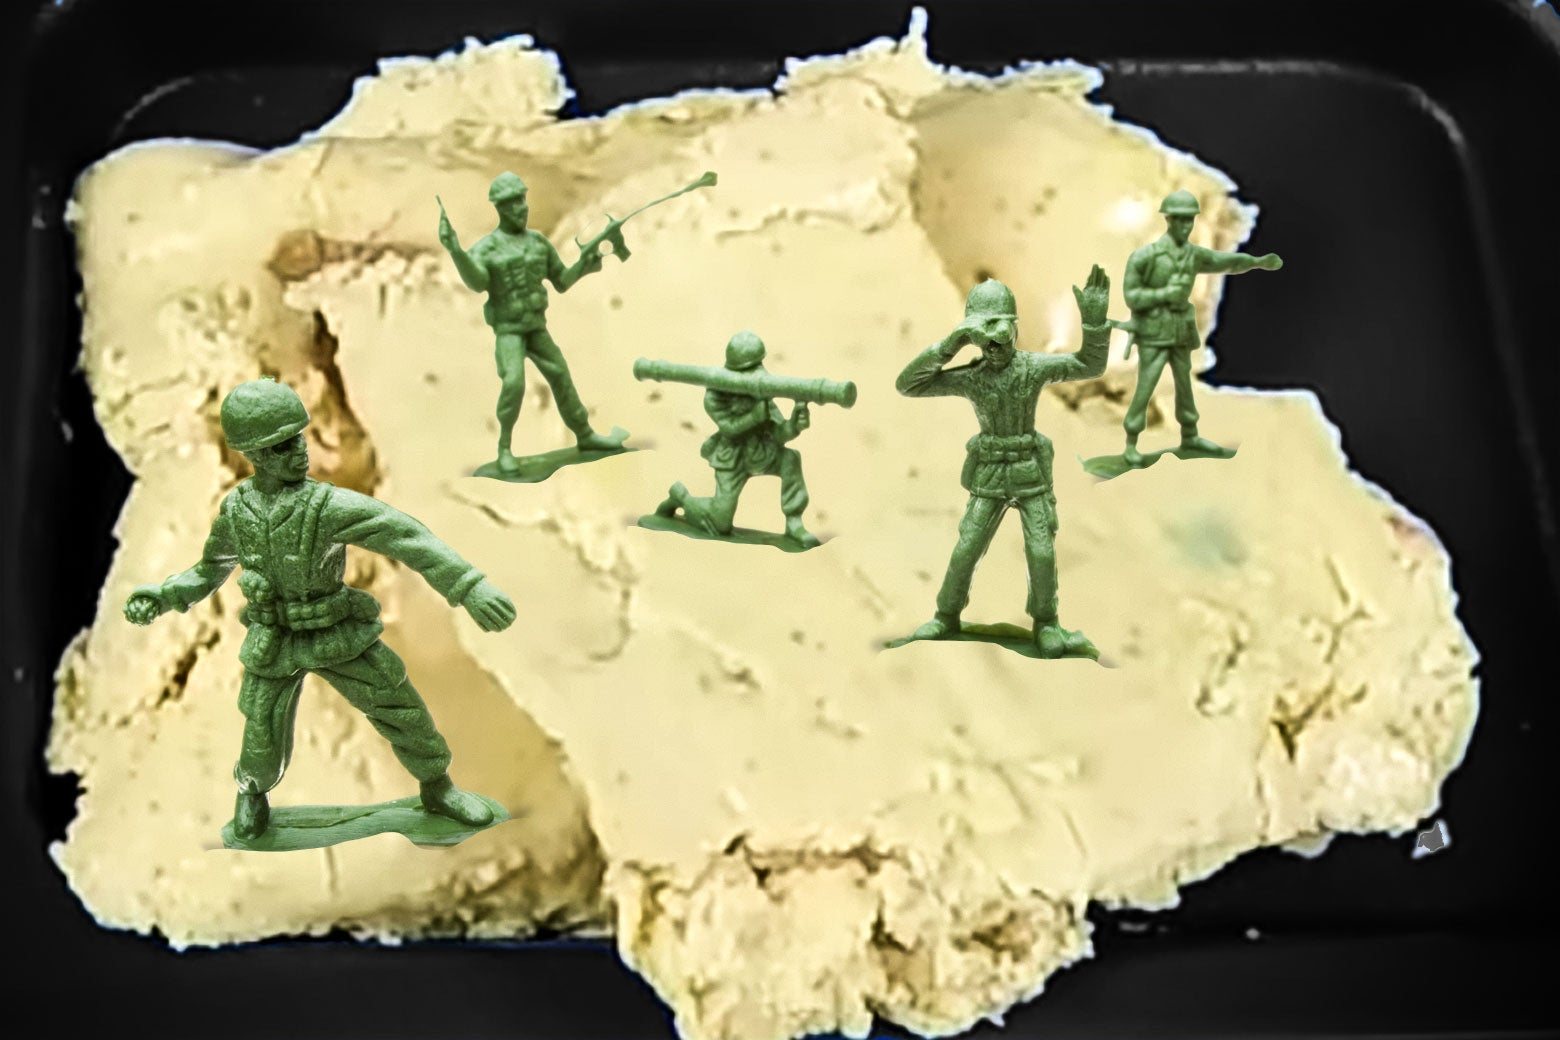 Vomelet with toy soldiers